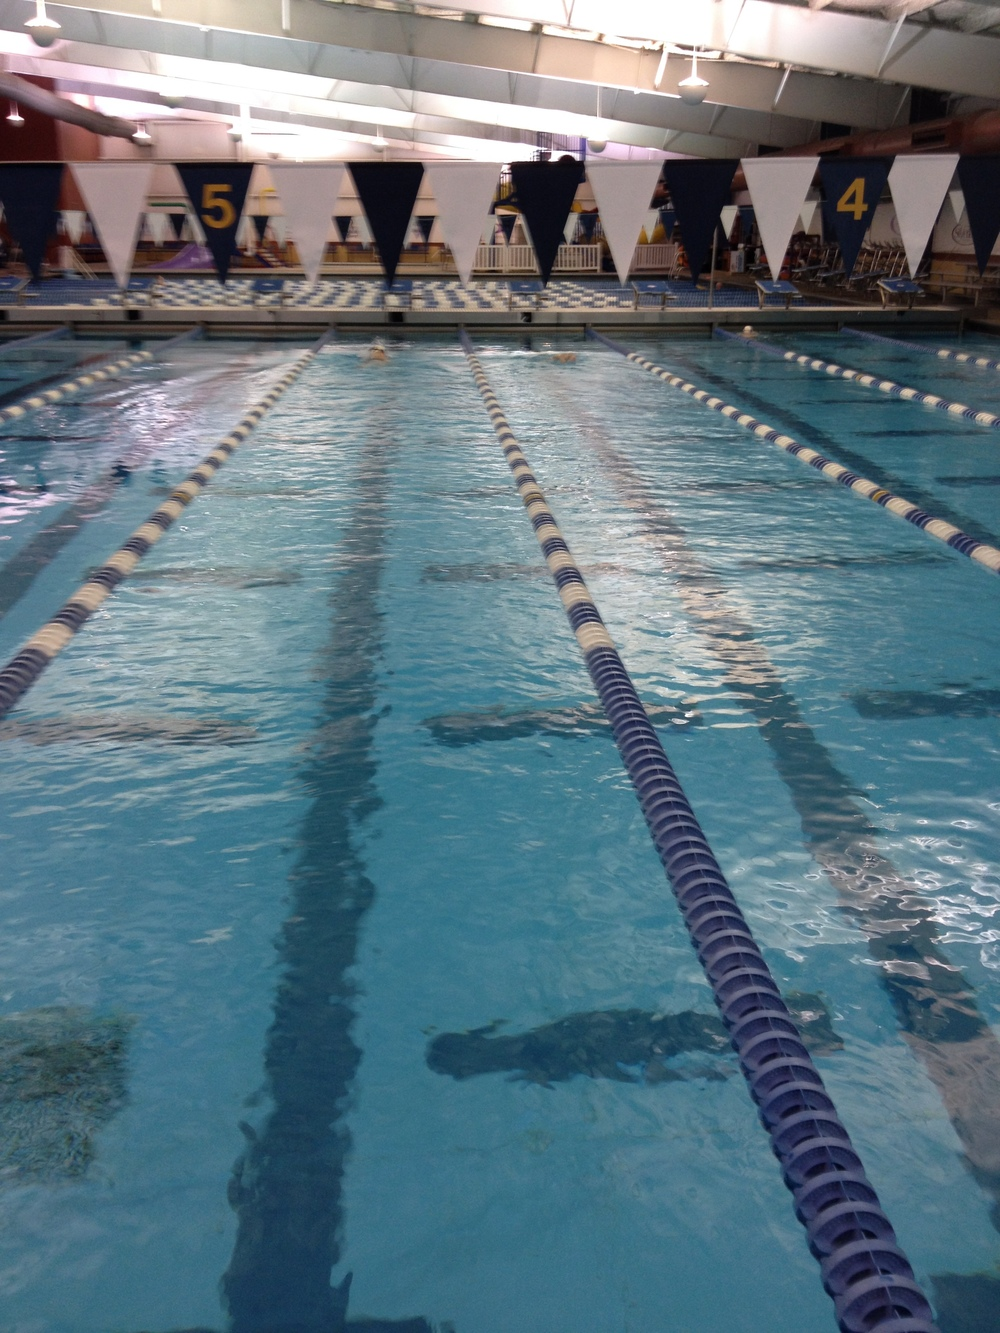 Where did the swimmers go????   Oh yeah, TENNESSEE TUMBLERS!